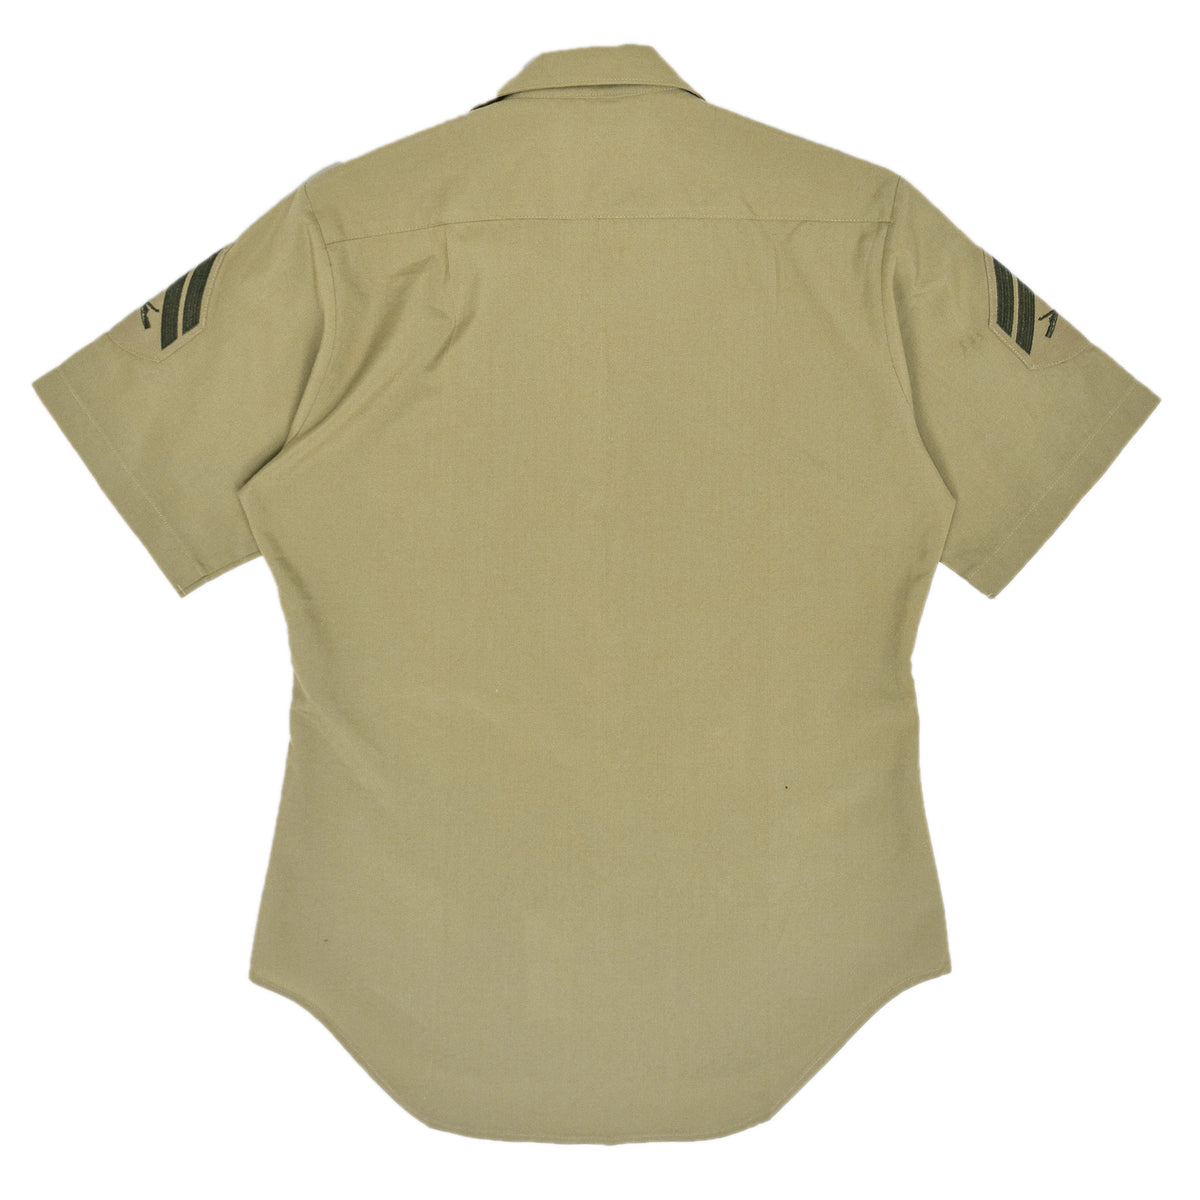 US Army DSCP Short Sleeve Khaki Cotton Military Field Shirt S back